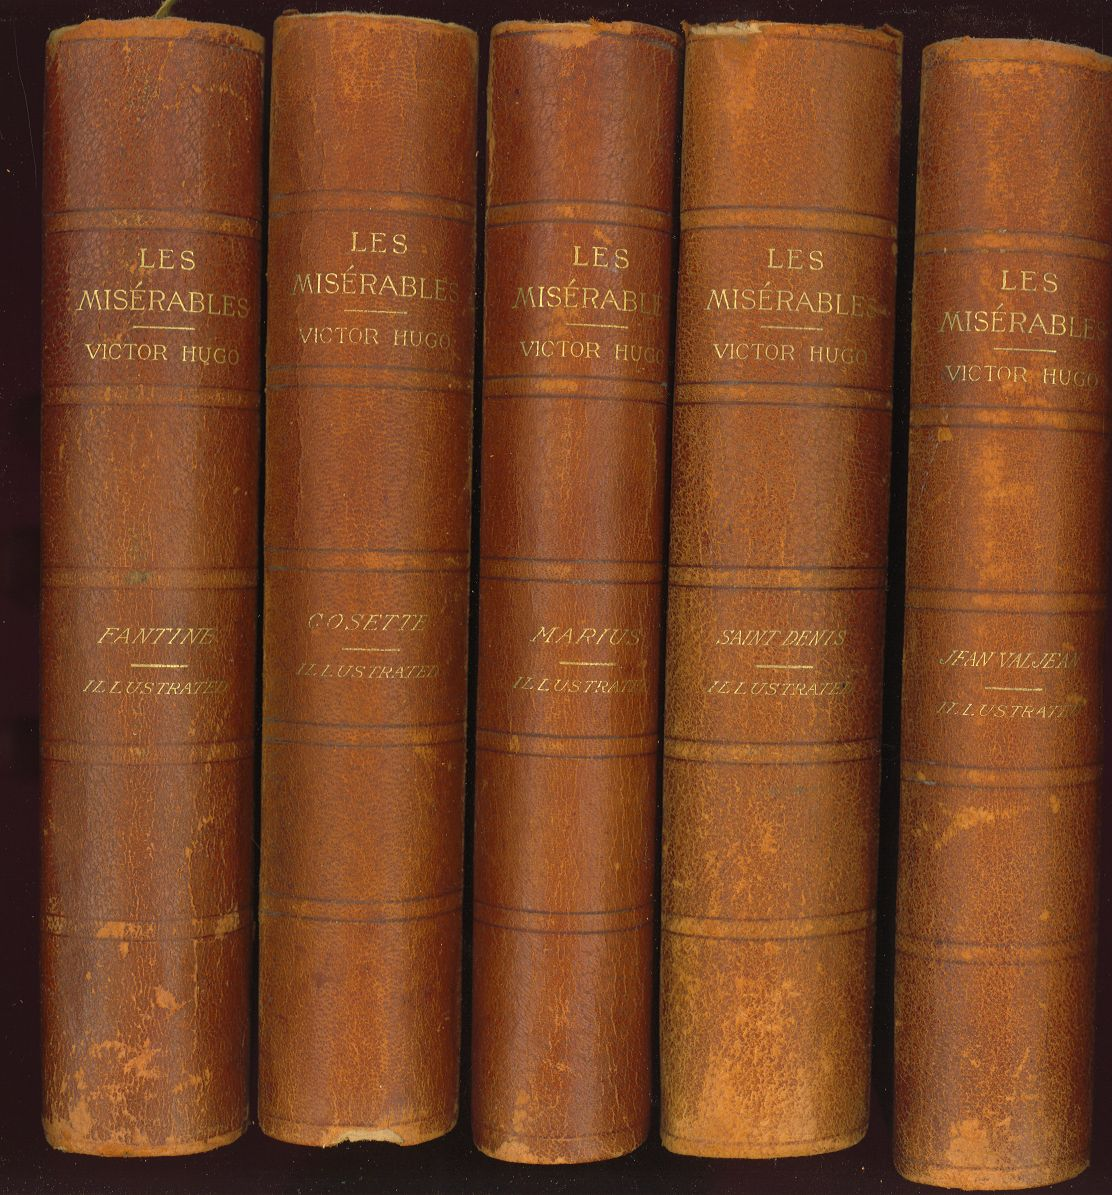 les mis atilde copy rables five volumes complete by victor hugo enlarge